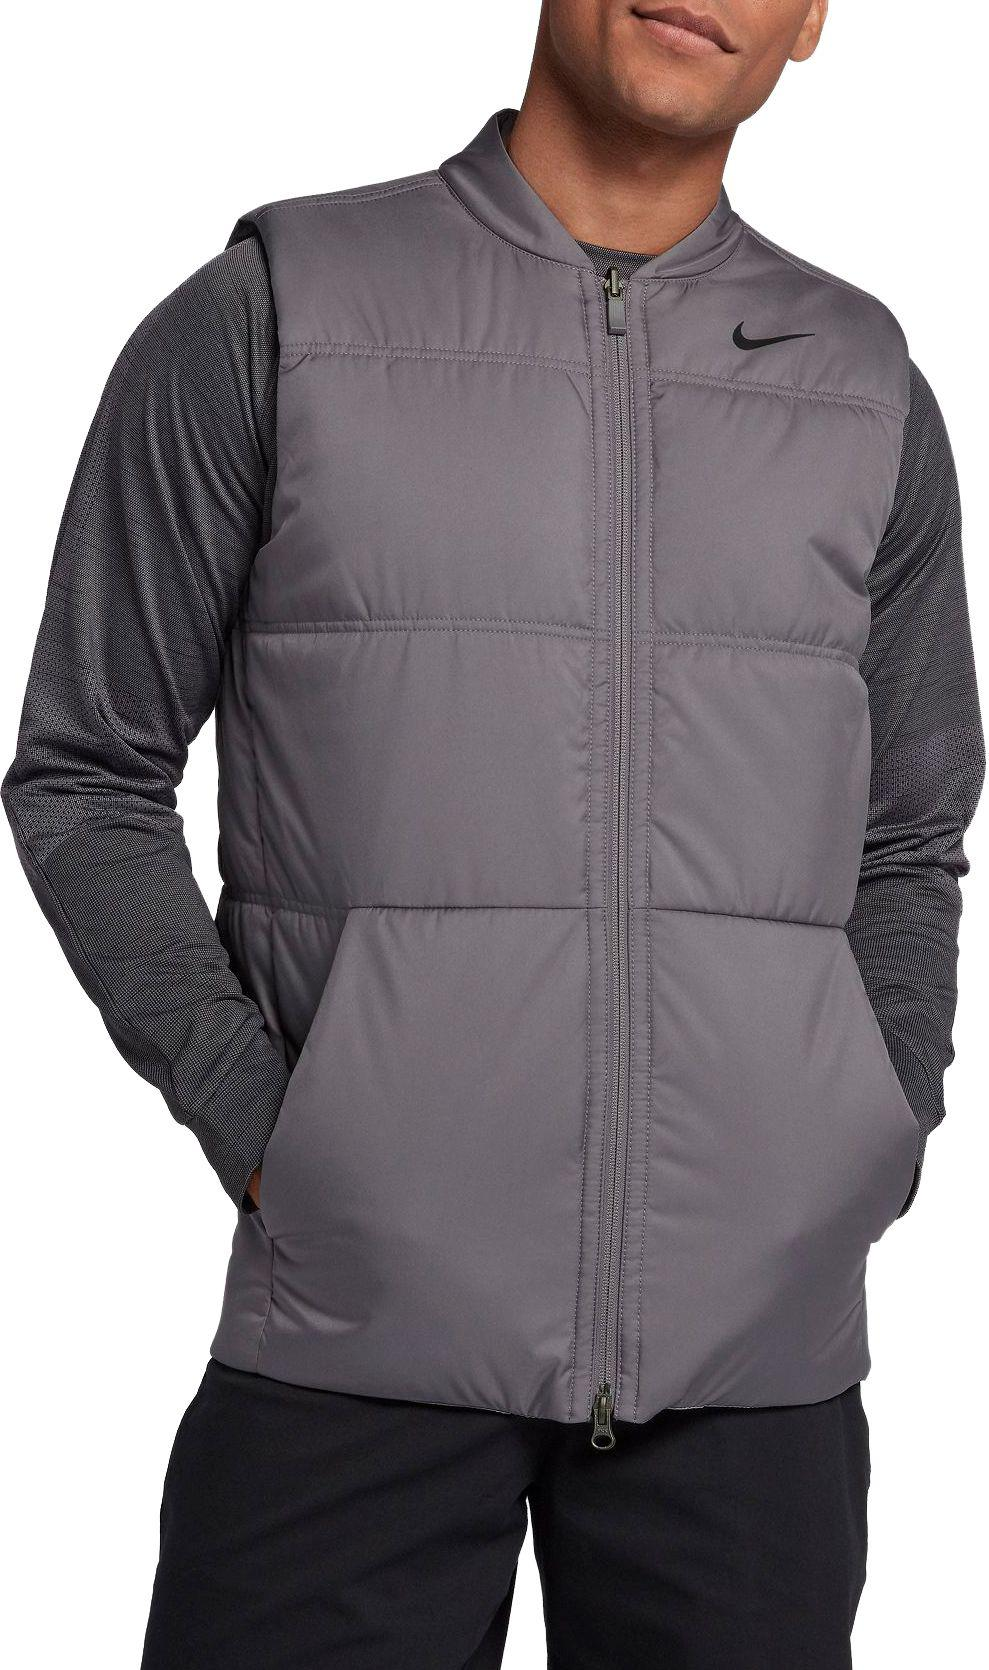 48a233fa3736 Lyst - Nike Reversible Insulated Golf Vest in Gray for Men - Save 26%